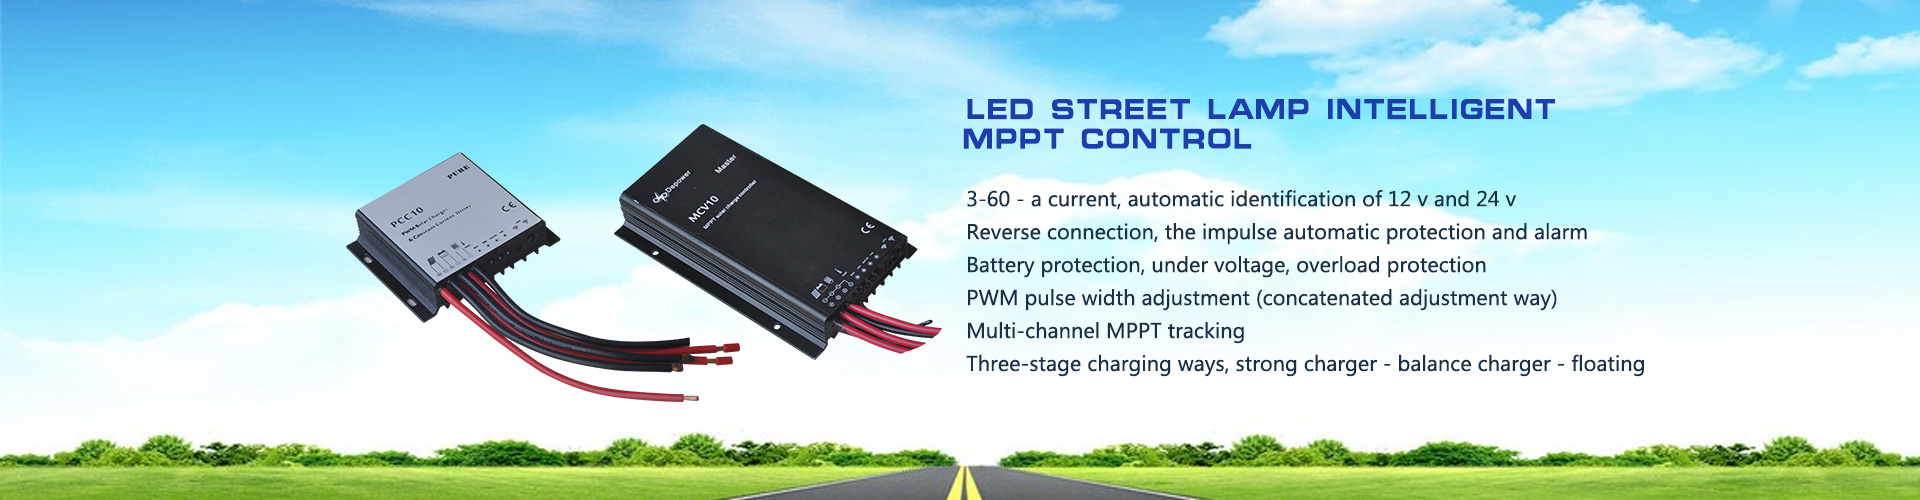 LED street lamp intelligent